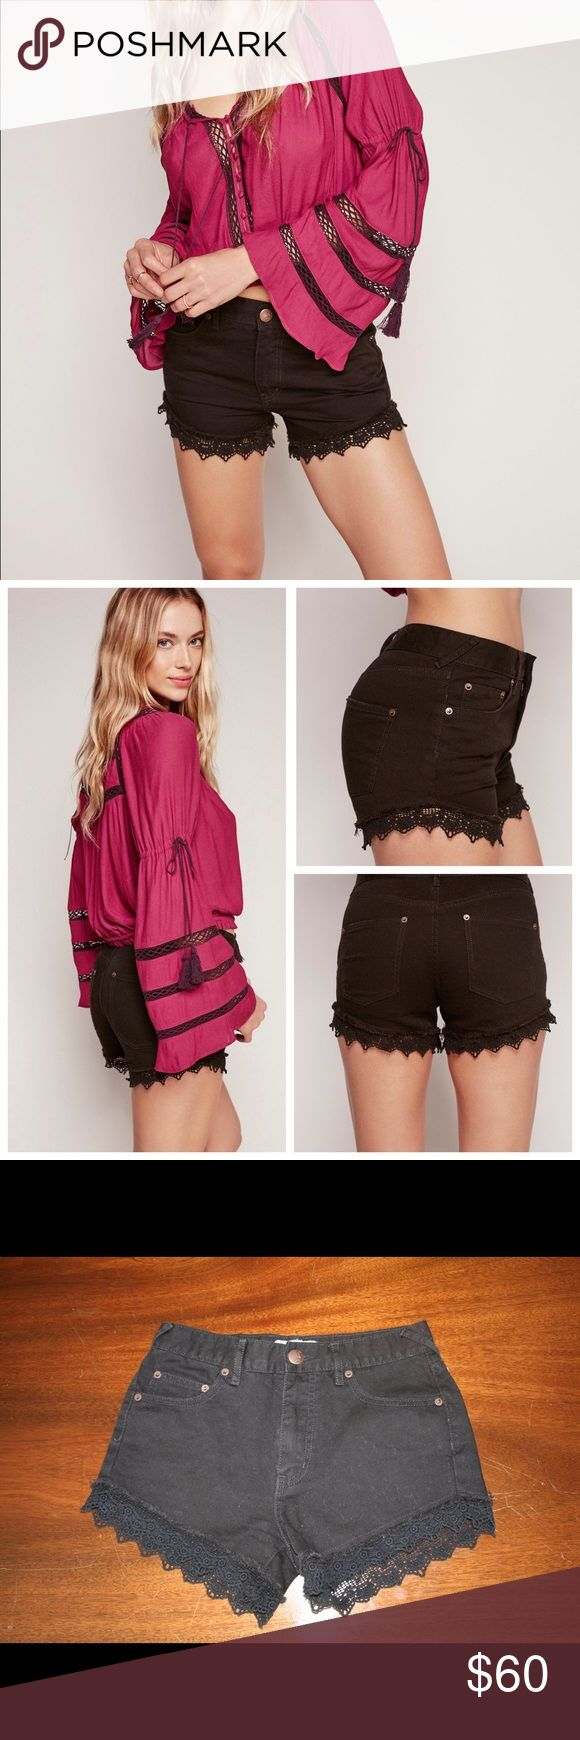 Free People Black Denim, Lace Trim Shorts Barely worn black jean shorts with lace trim along the cuff. Perfect spring/summer shorts. Free People Shorts Jean Shorts